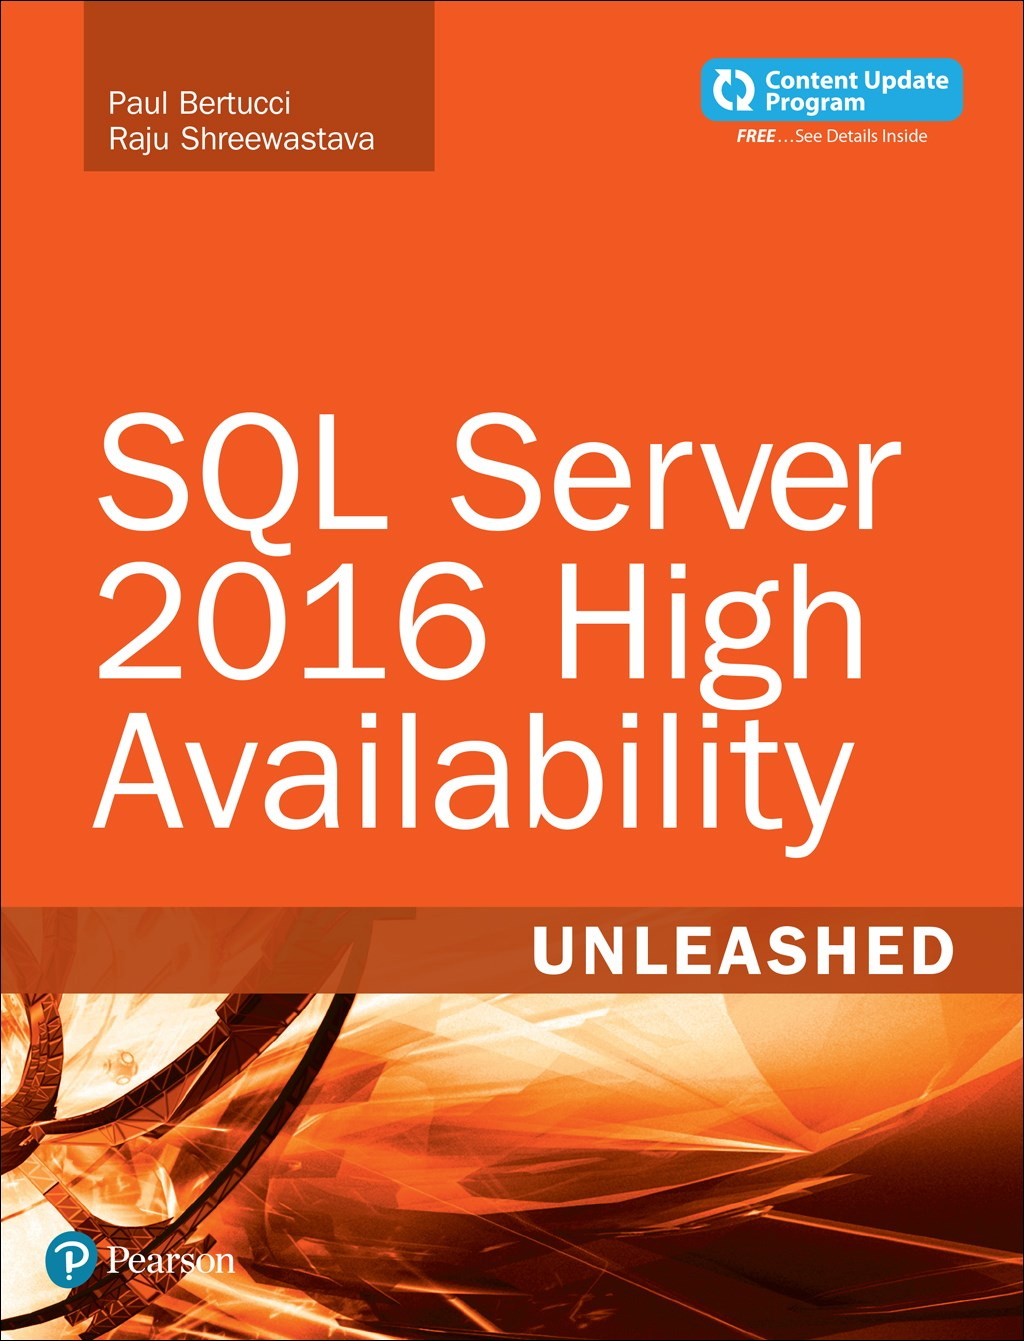 SQL Server 2016 High Availability Unleashed